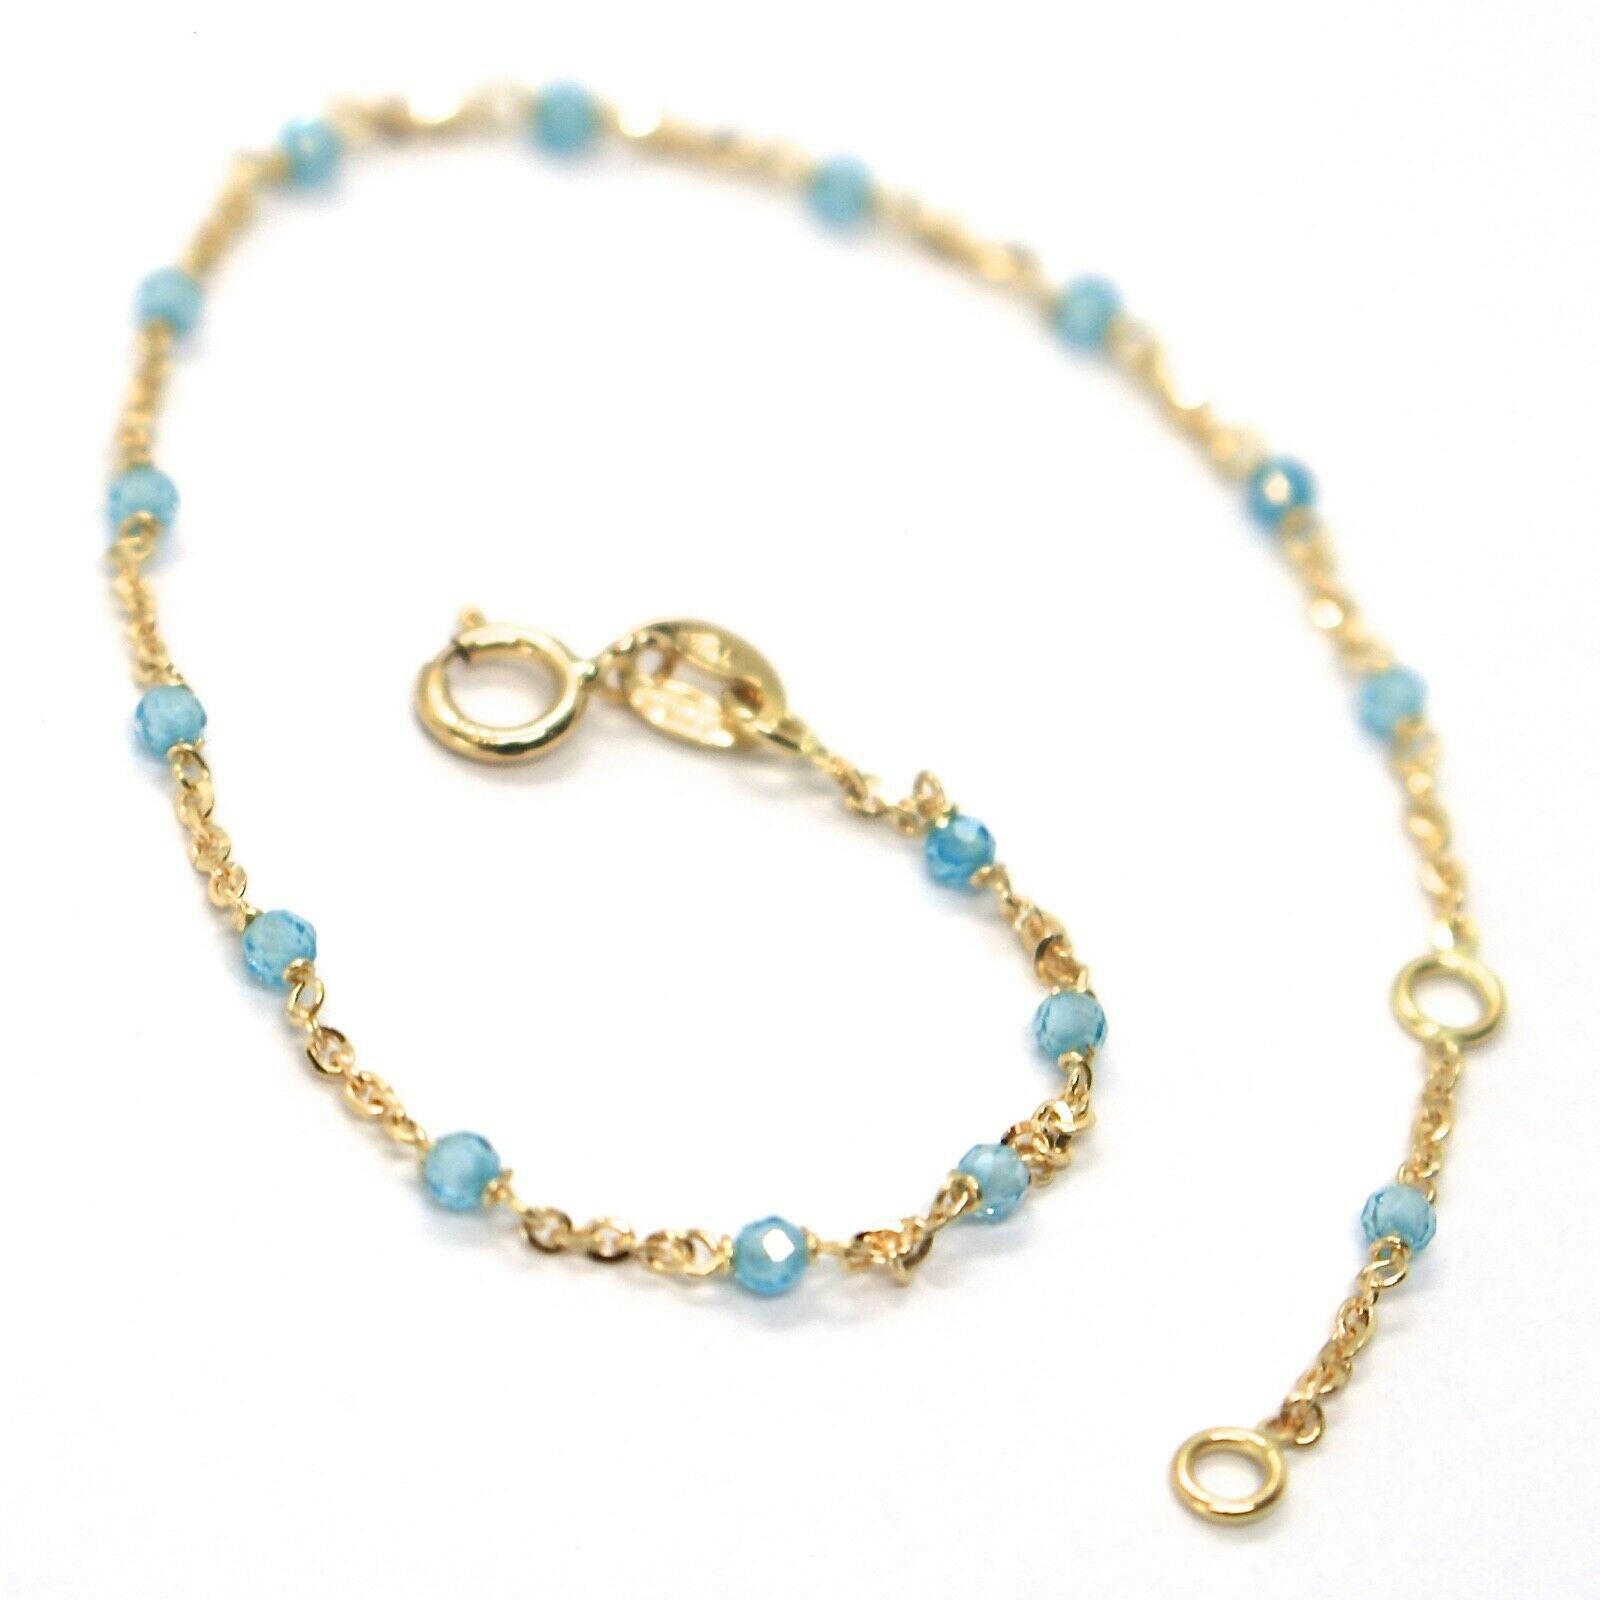 18K YELLOW GOLD BRACELET, AZURE FACETED CUBIC ZIRCONIA, ROLO CHAIN, 6.9 INCHES